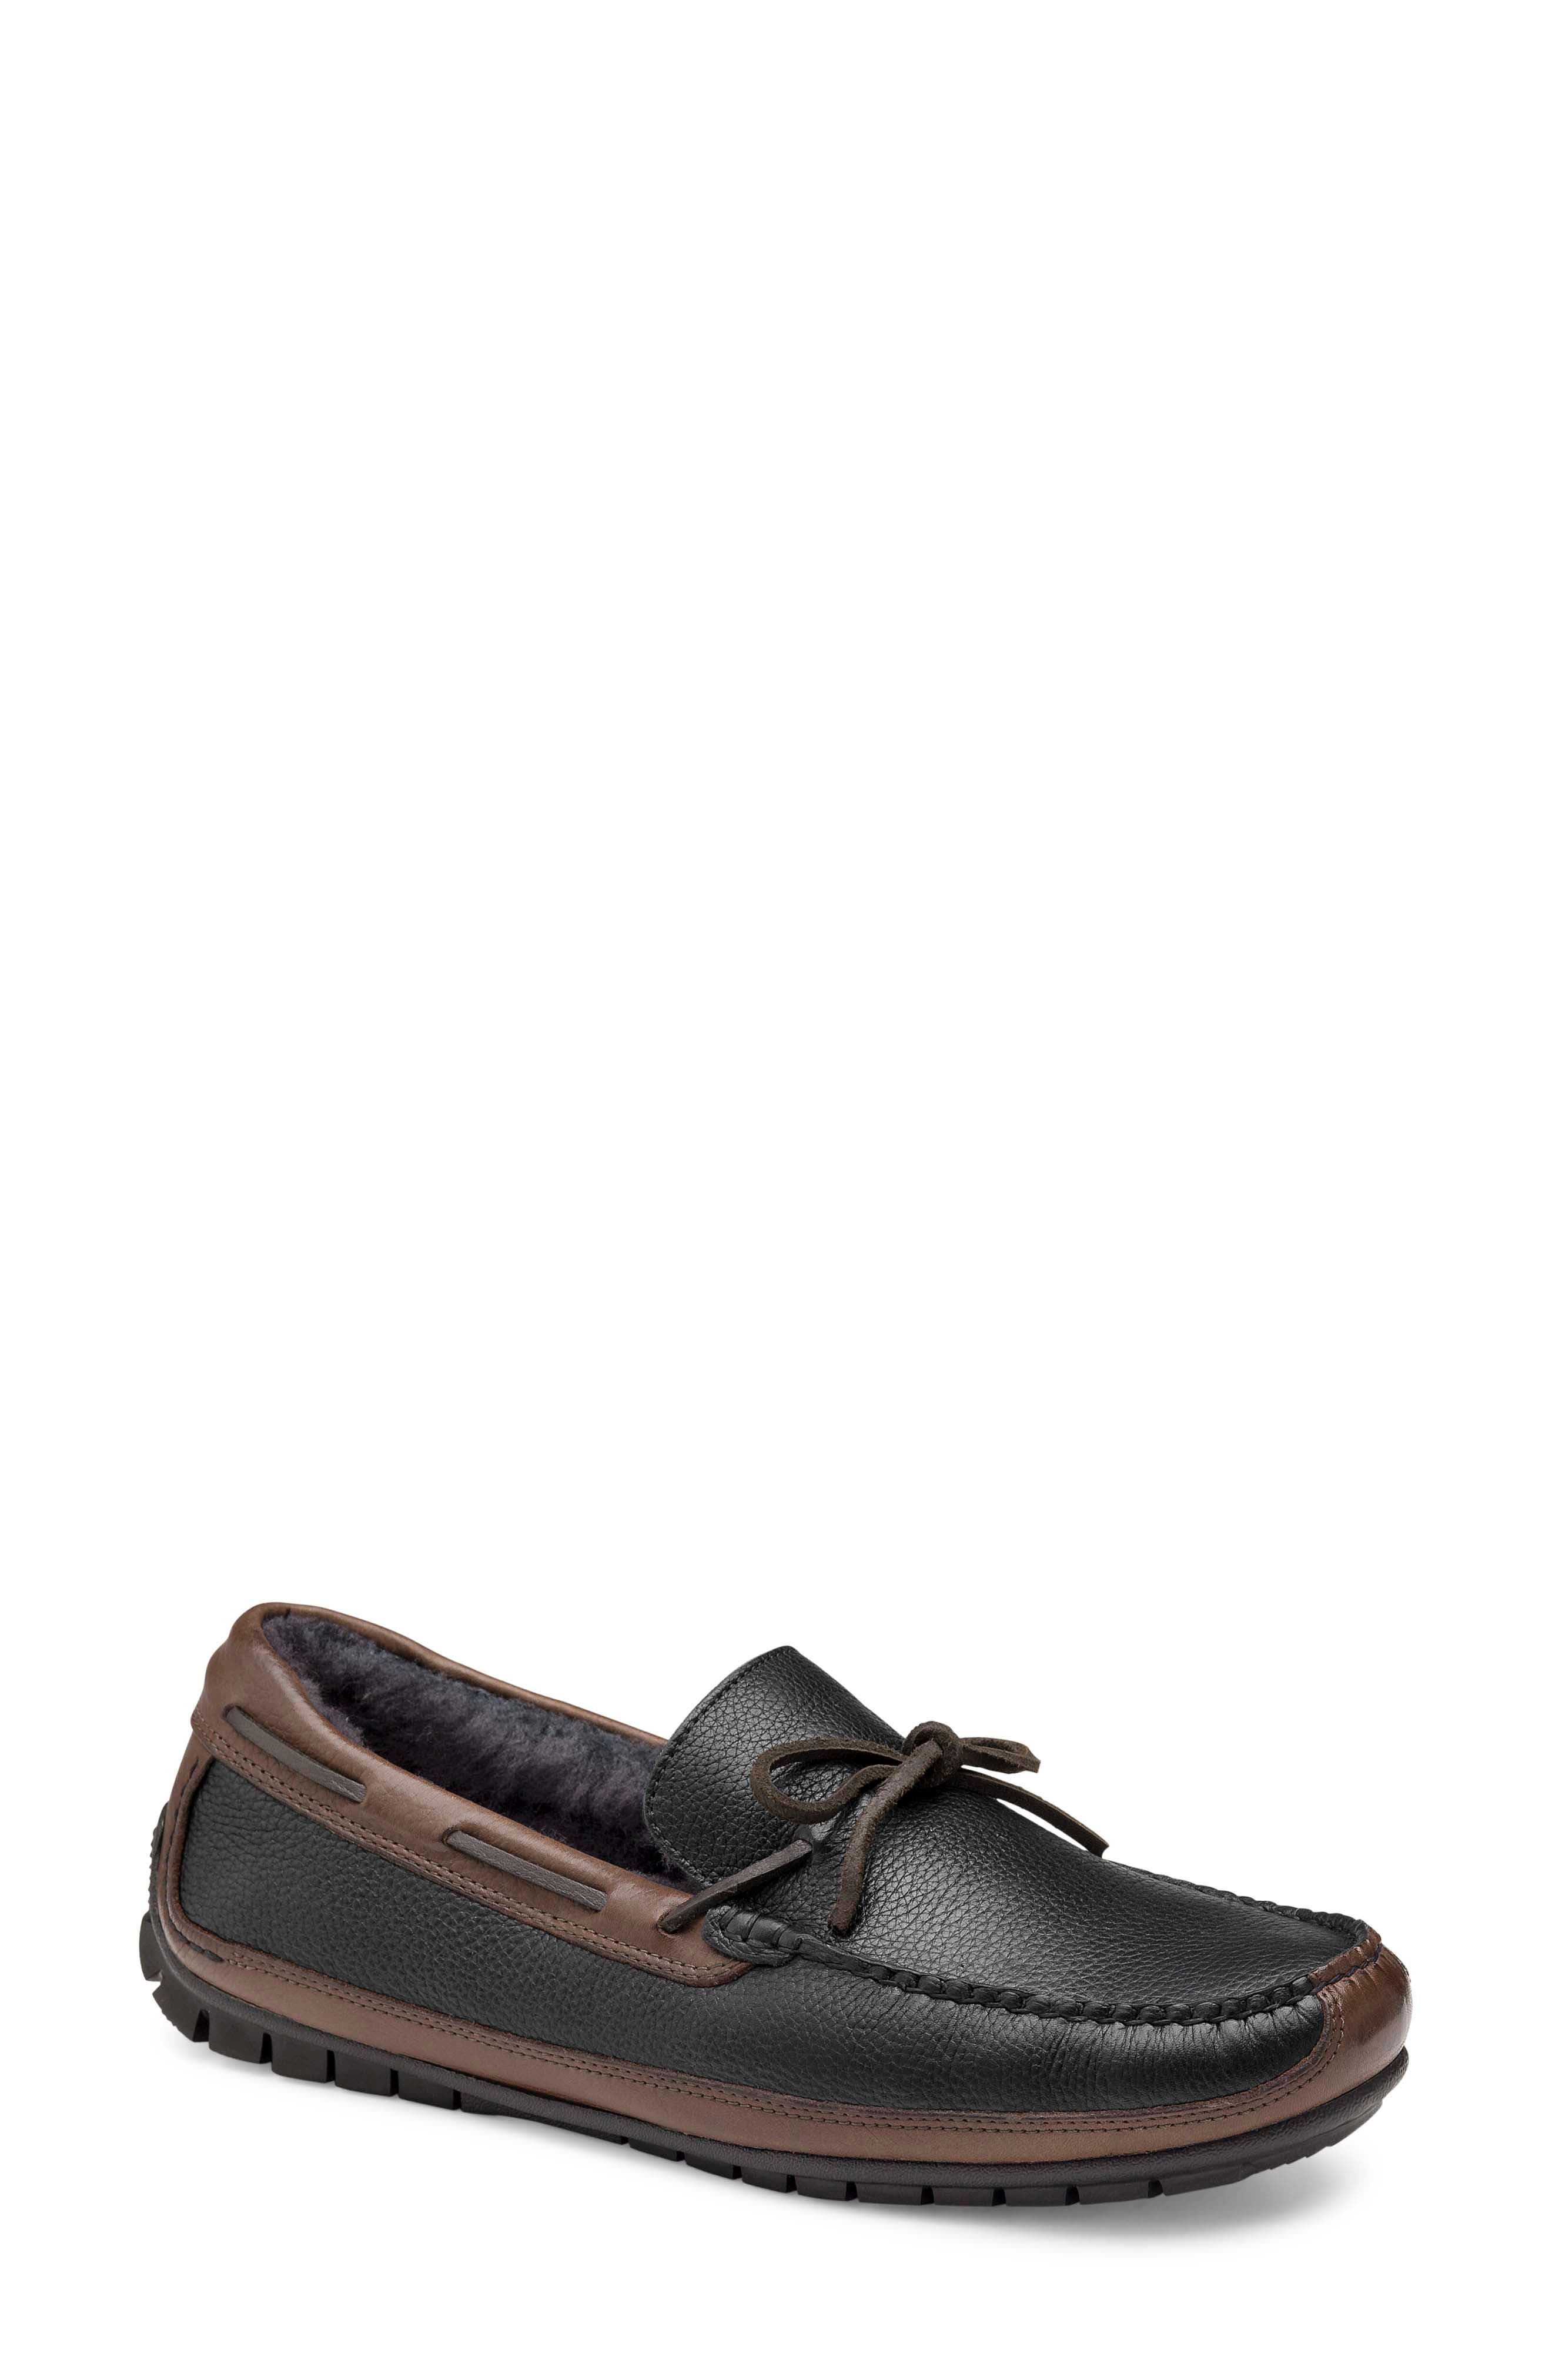 Cort Genuine Shearling Lined Driving Shoe